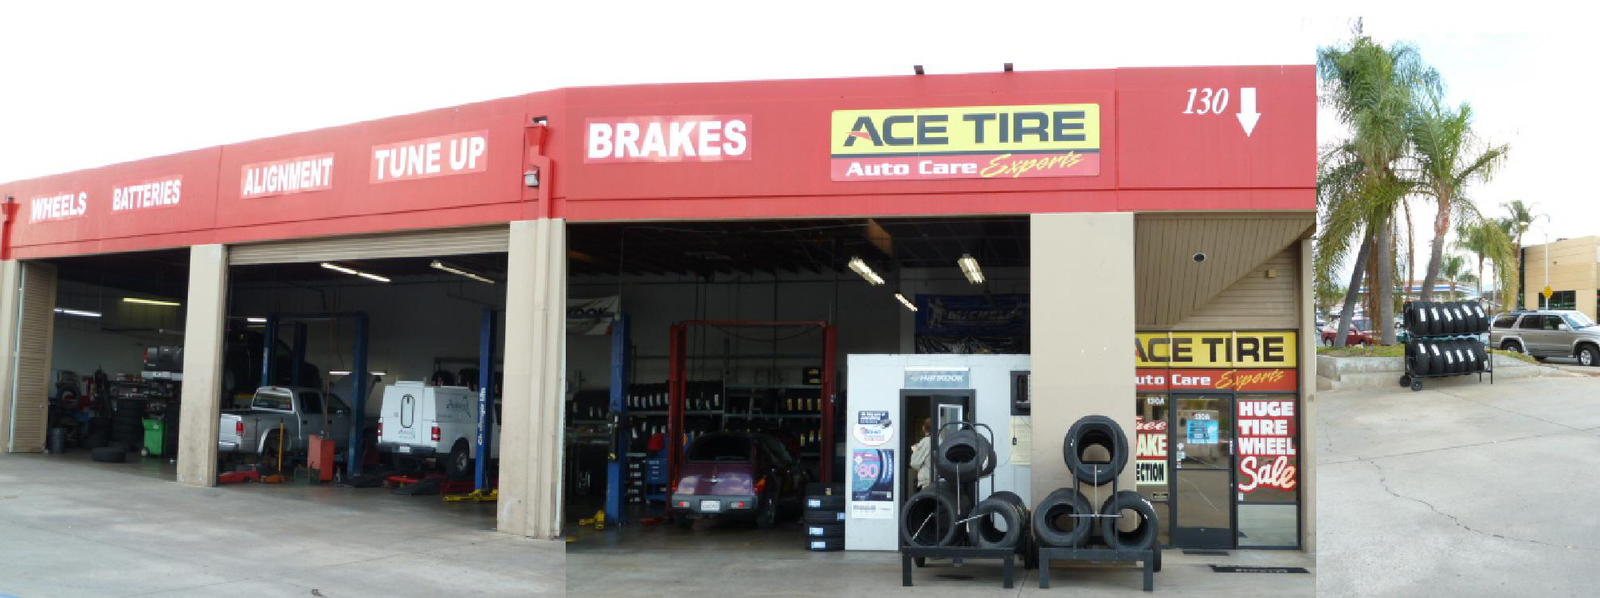 ACE TIRE CENTERS of EL CAJON